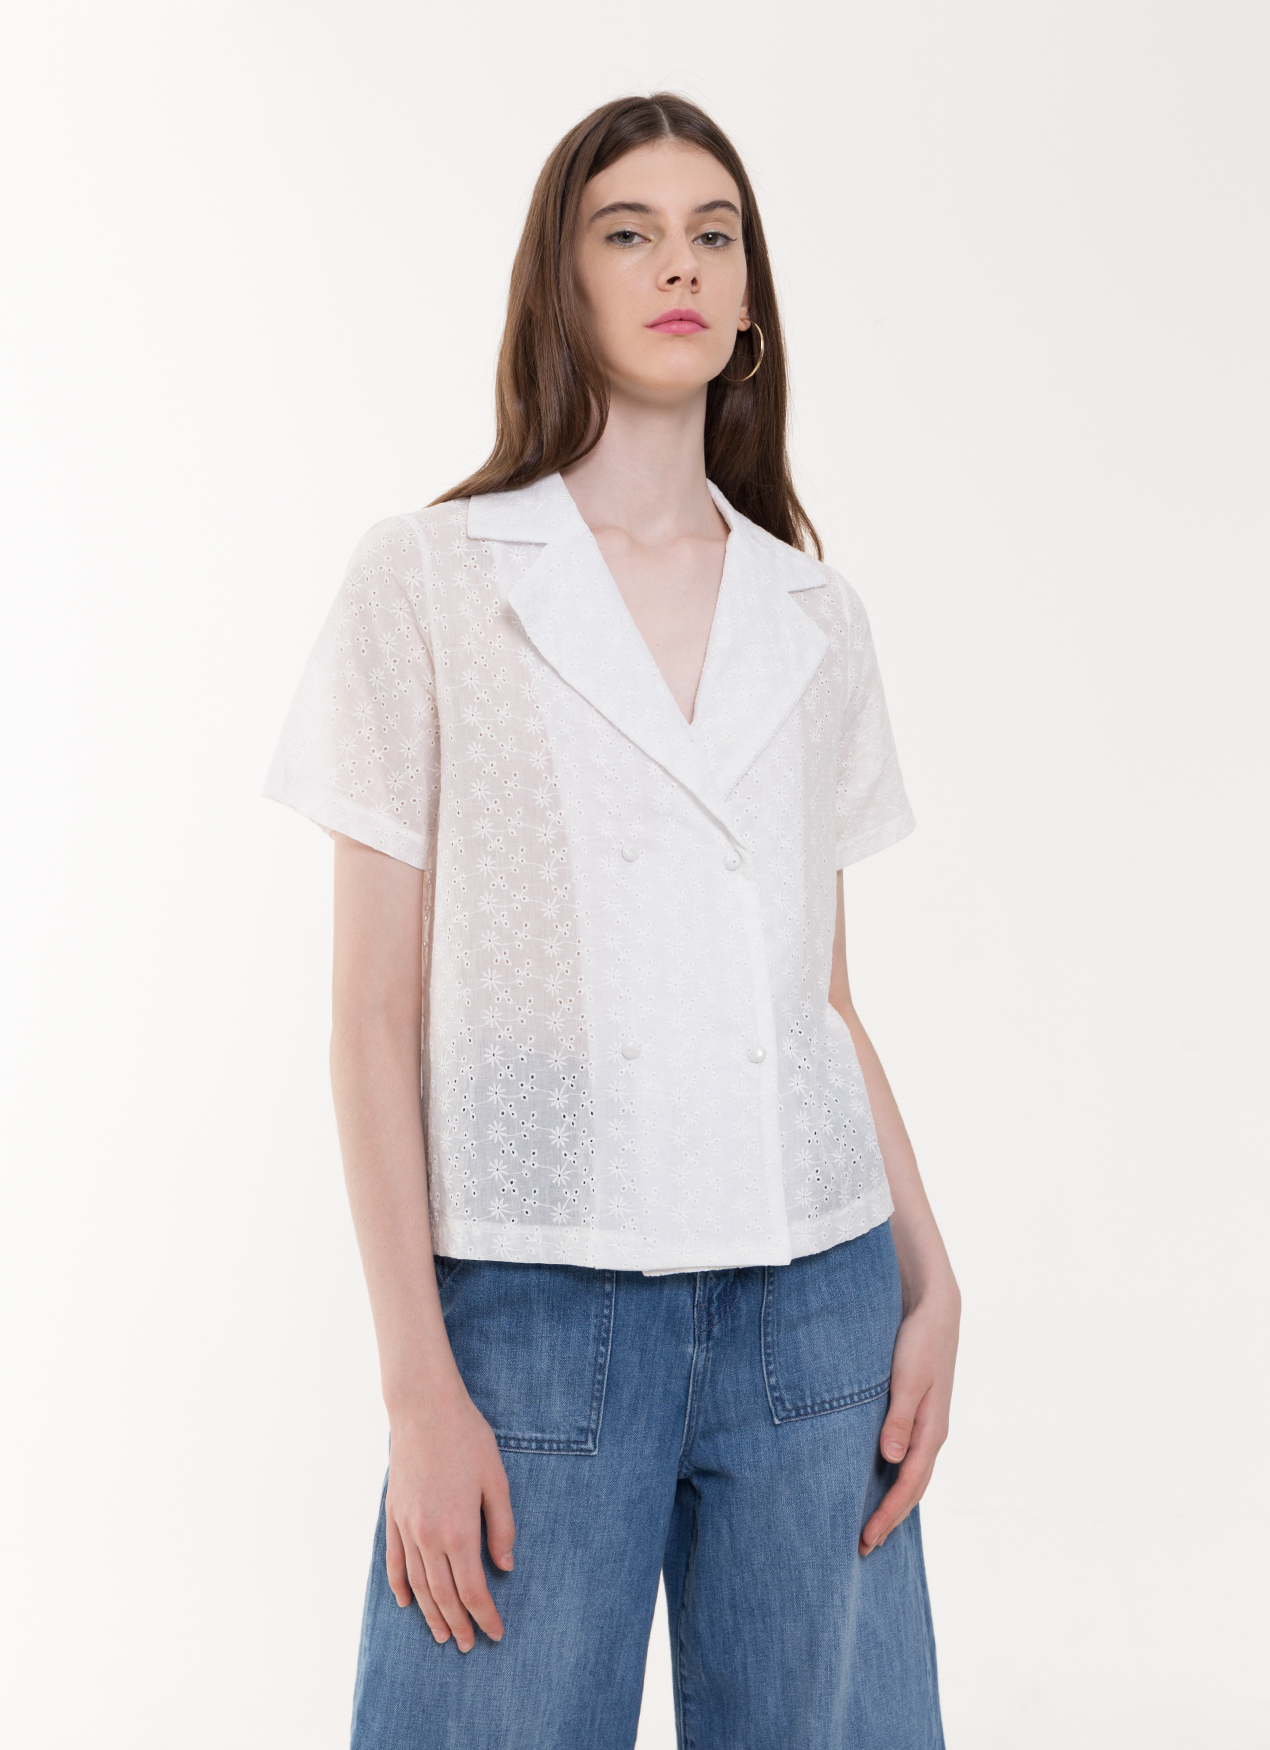 BOWN Sisi Top - White